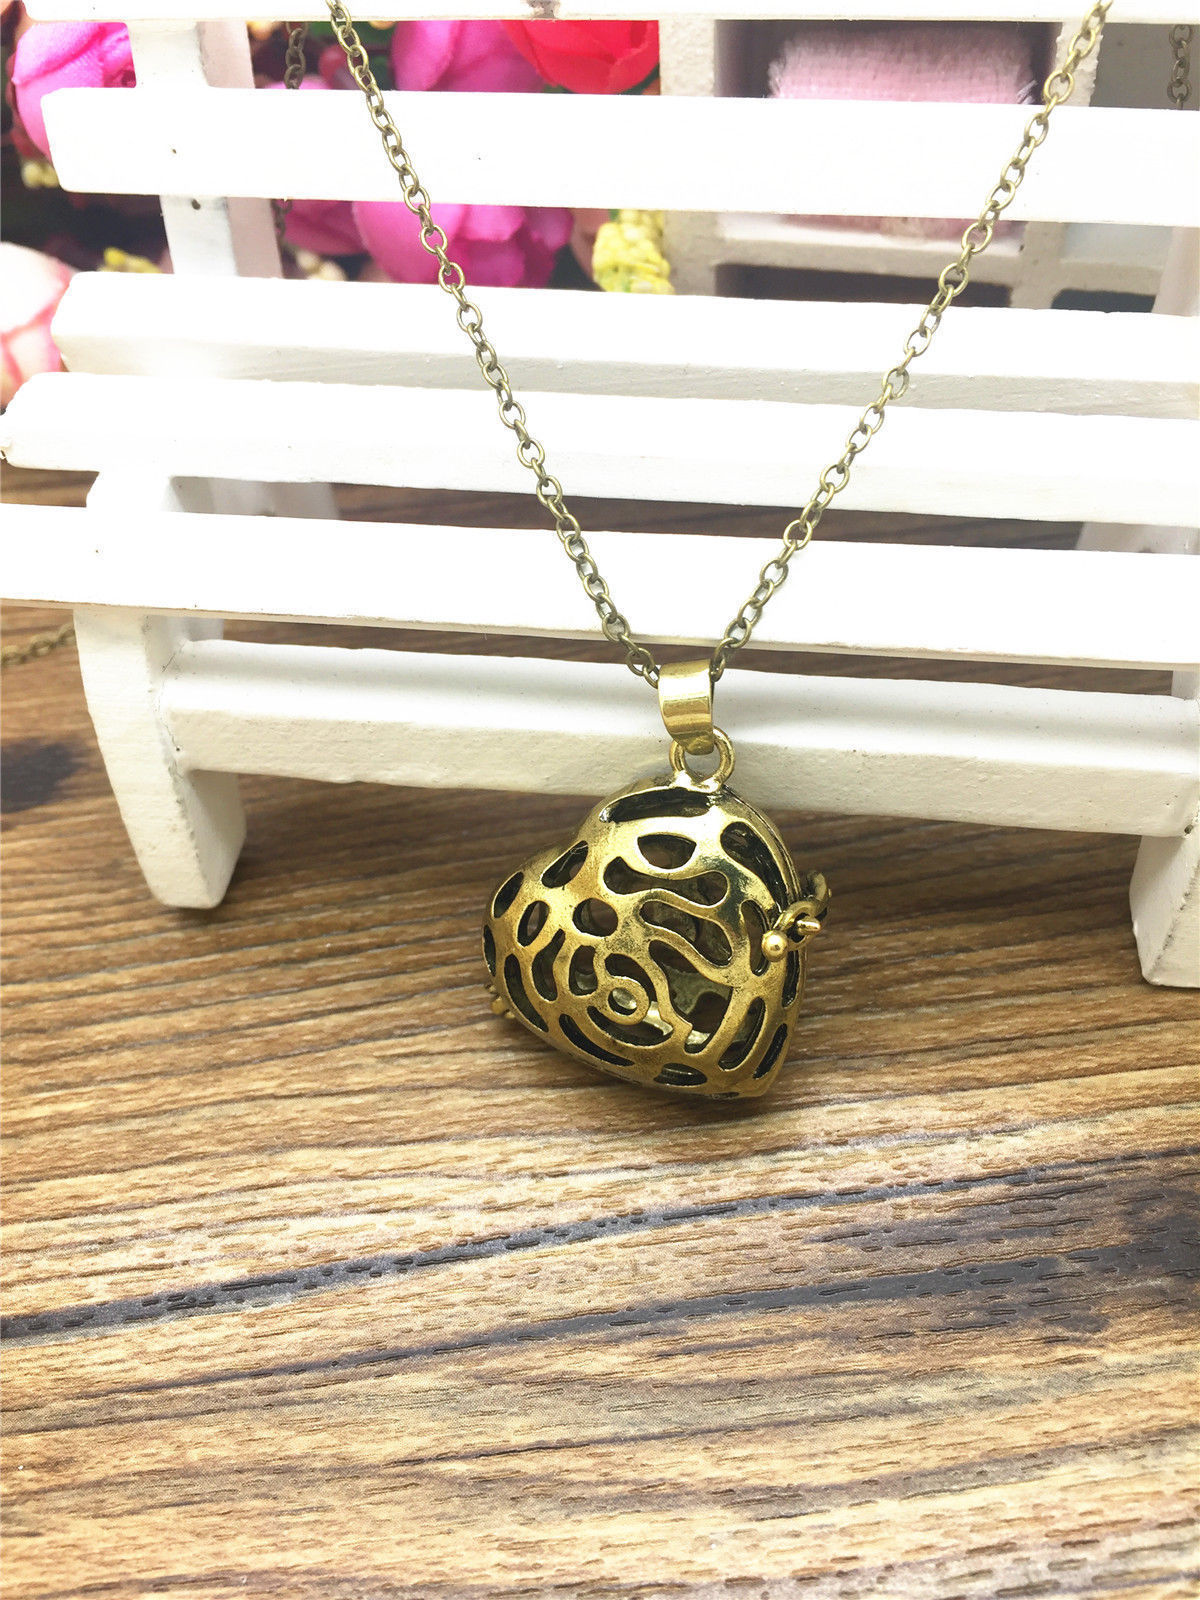 Primary image for A HEART AROMA DIFFUSER LOCKET NECKLACE   >> COMBINED SHIPPING <<   (